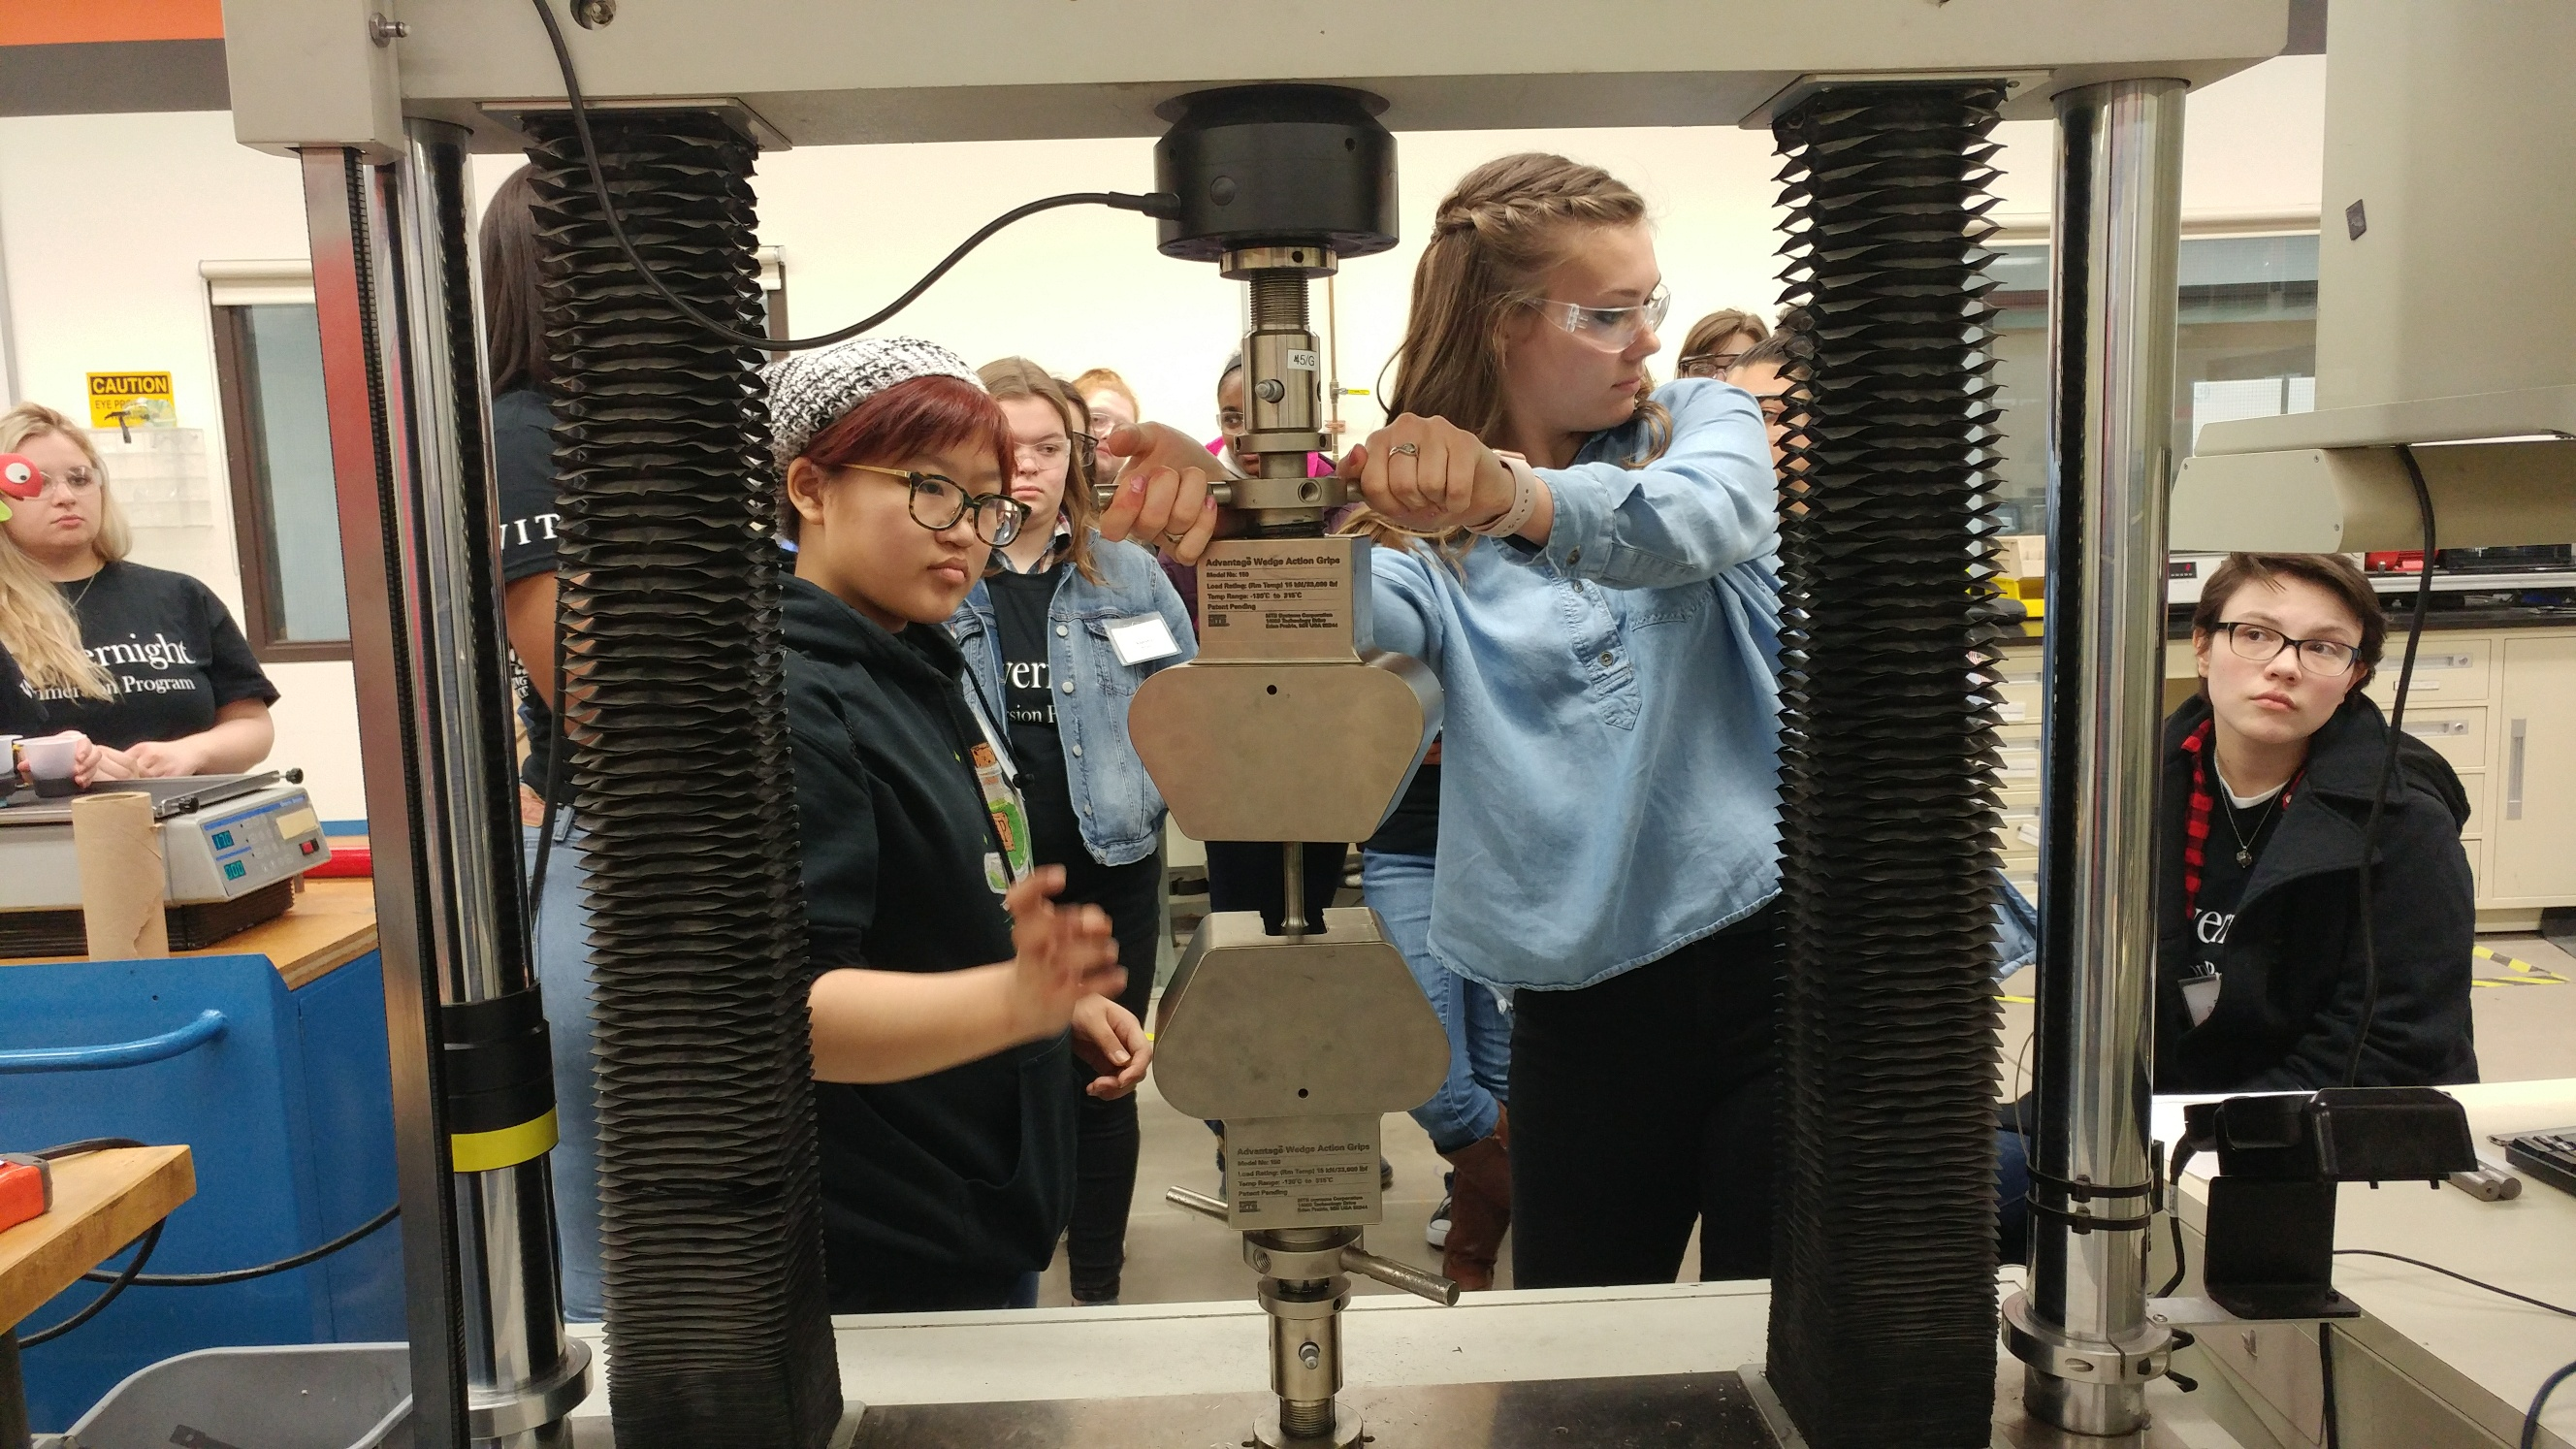 A group of students work with a large piece of lab equipment